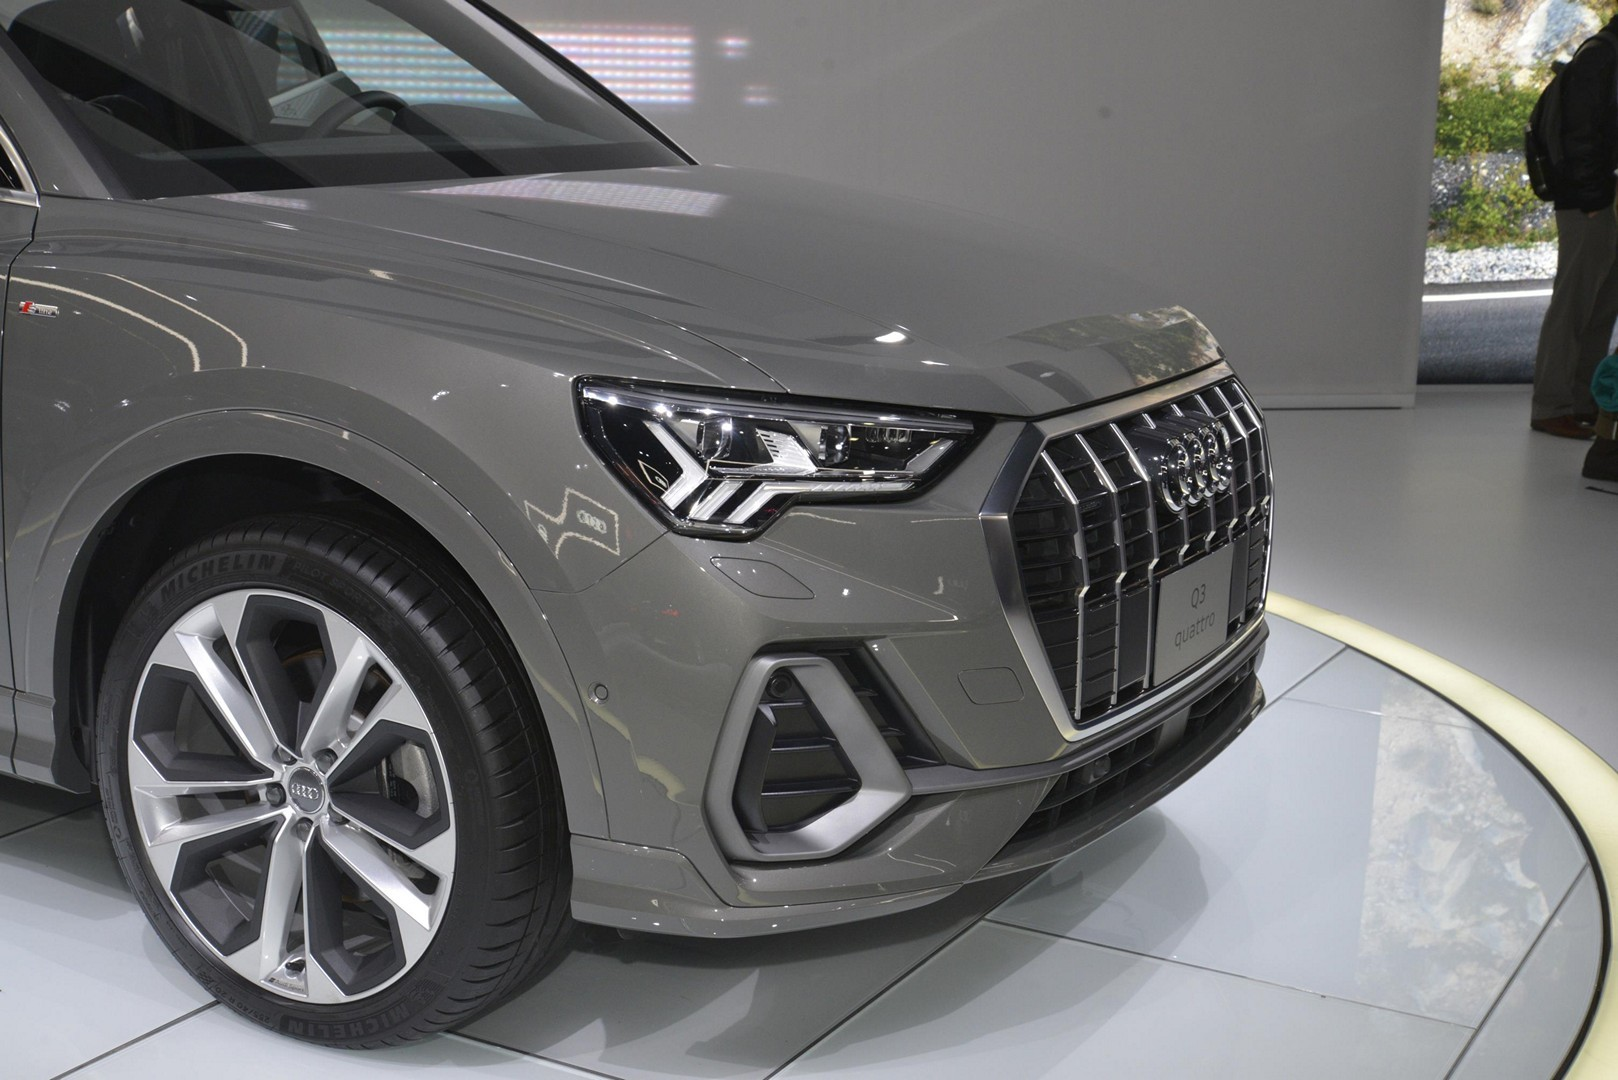 2019 Audi Q3 Gets Detailed UK Review, Is as Practical as